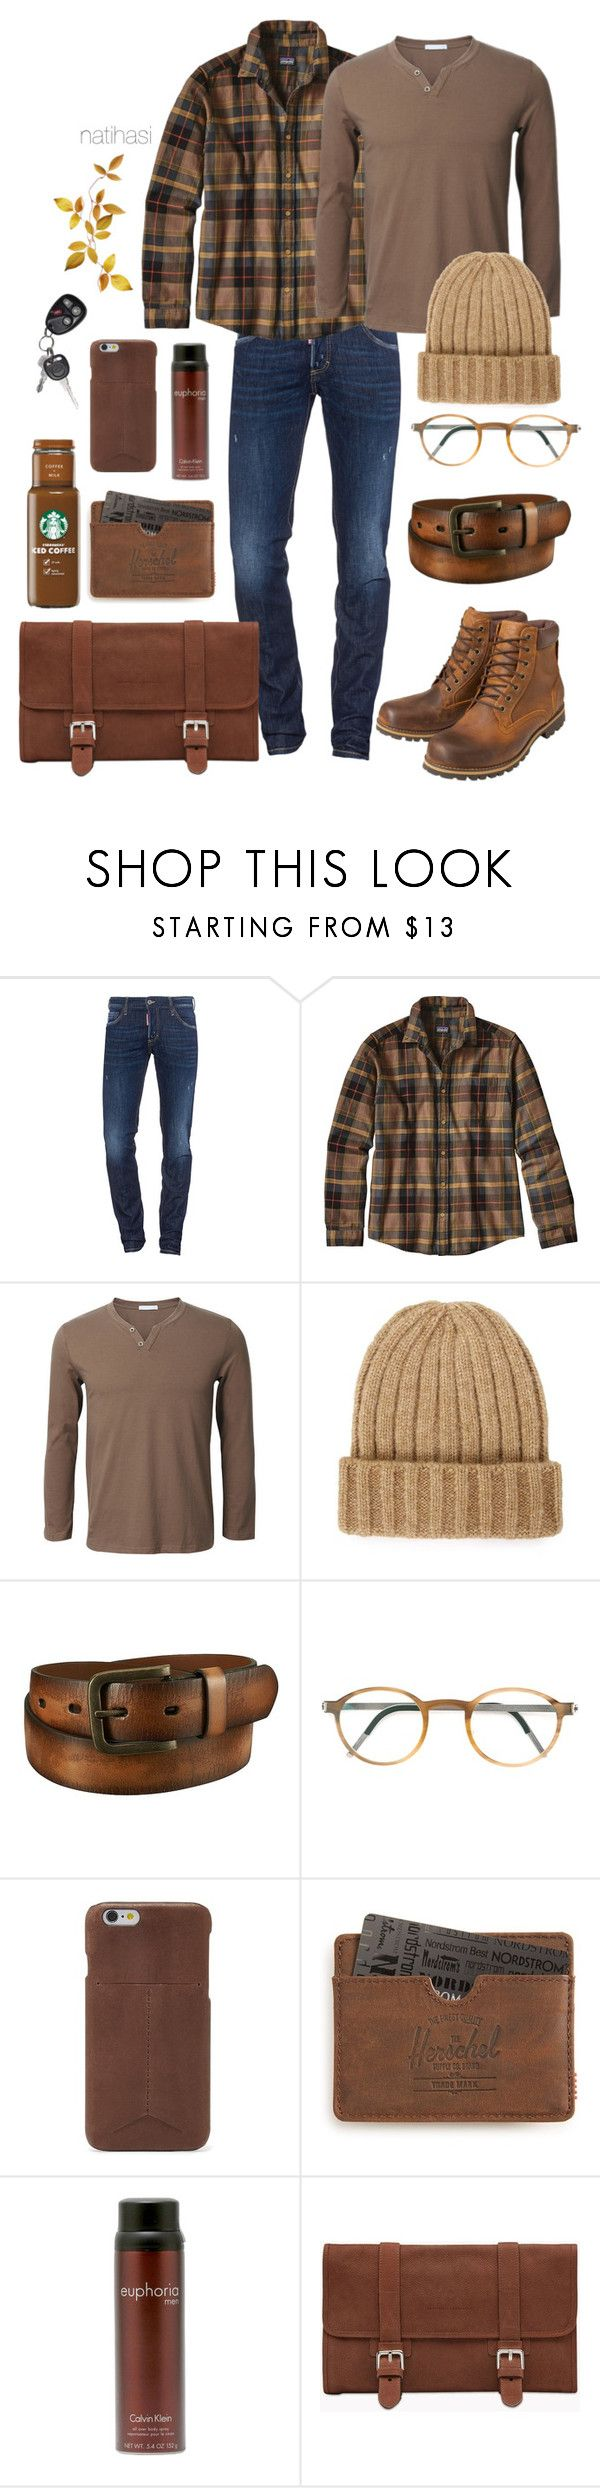 """Men Plaid Fall Outfit"" by natihasi ❤ liked on Polyvore featuring Dsquared2, Patagonia, Earthkeepers By Timberland, Topman, Uniqlo, Lindberg, FOSSIL, Herschel Supply Co., Calvin Klein and Brunello Cucinelli"